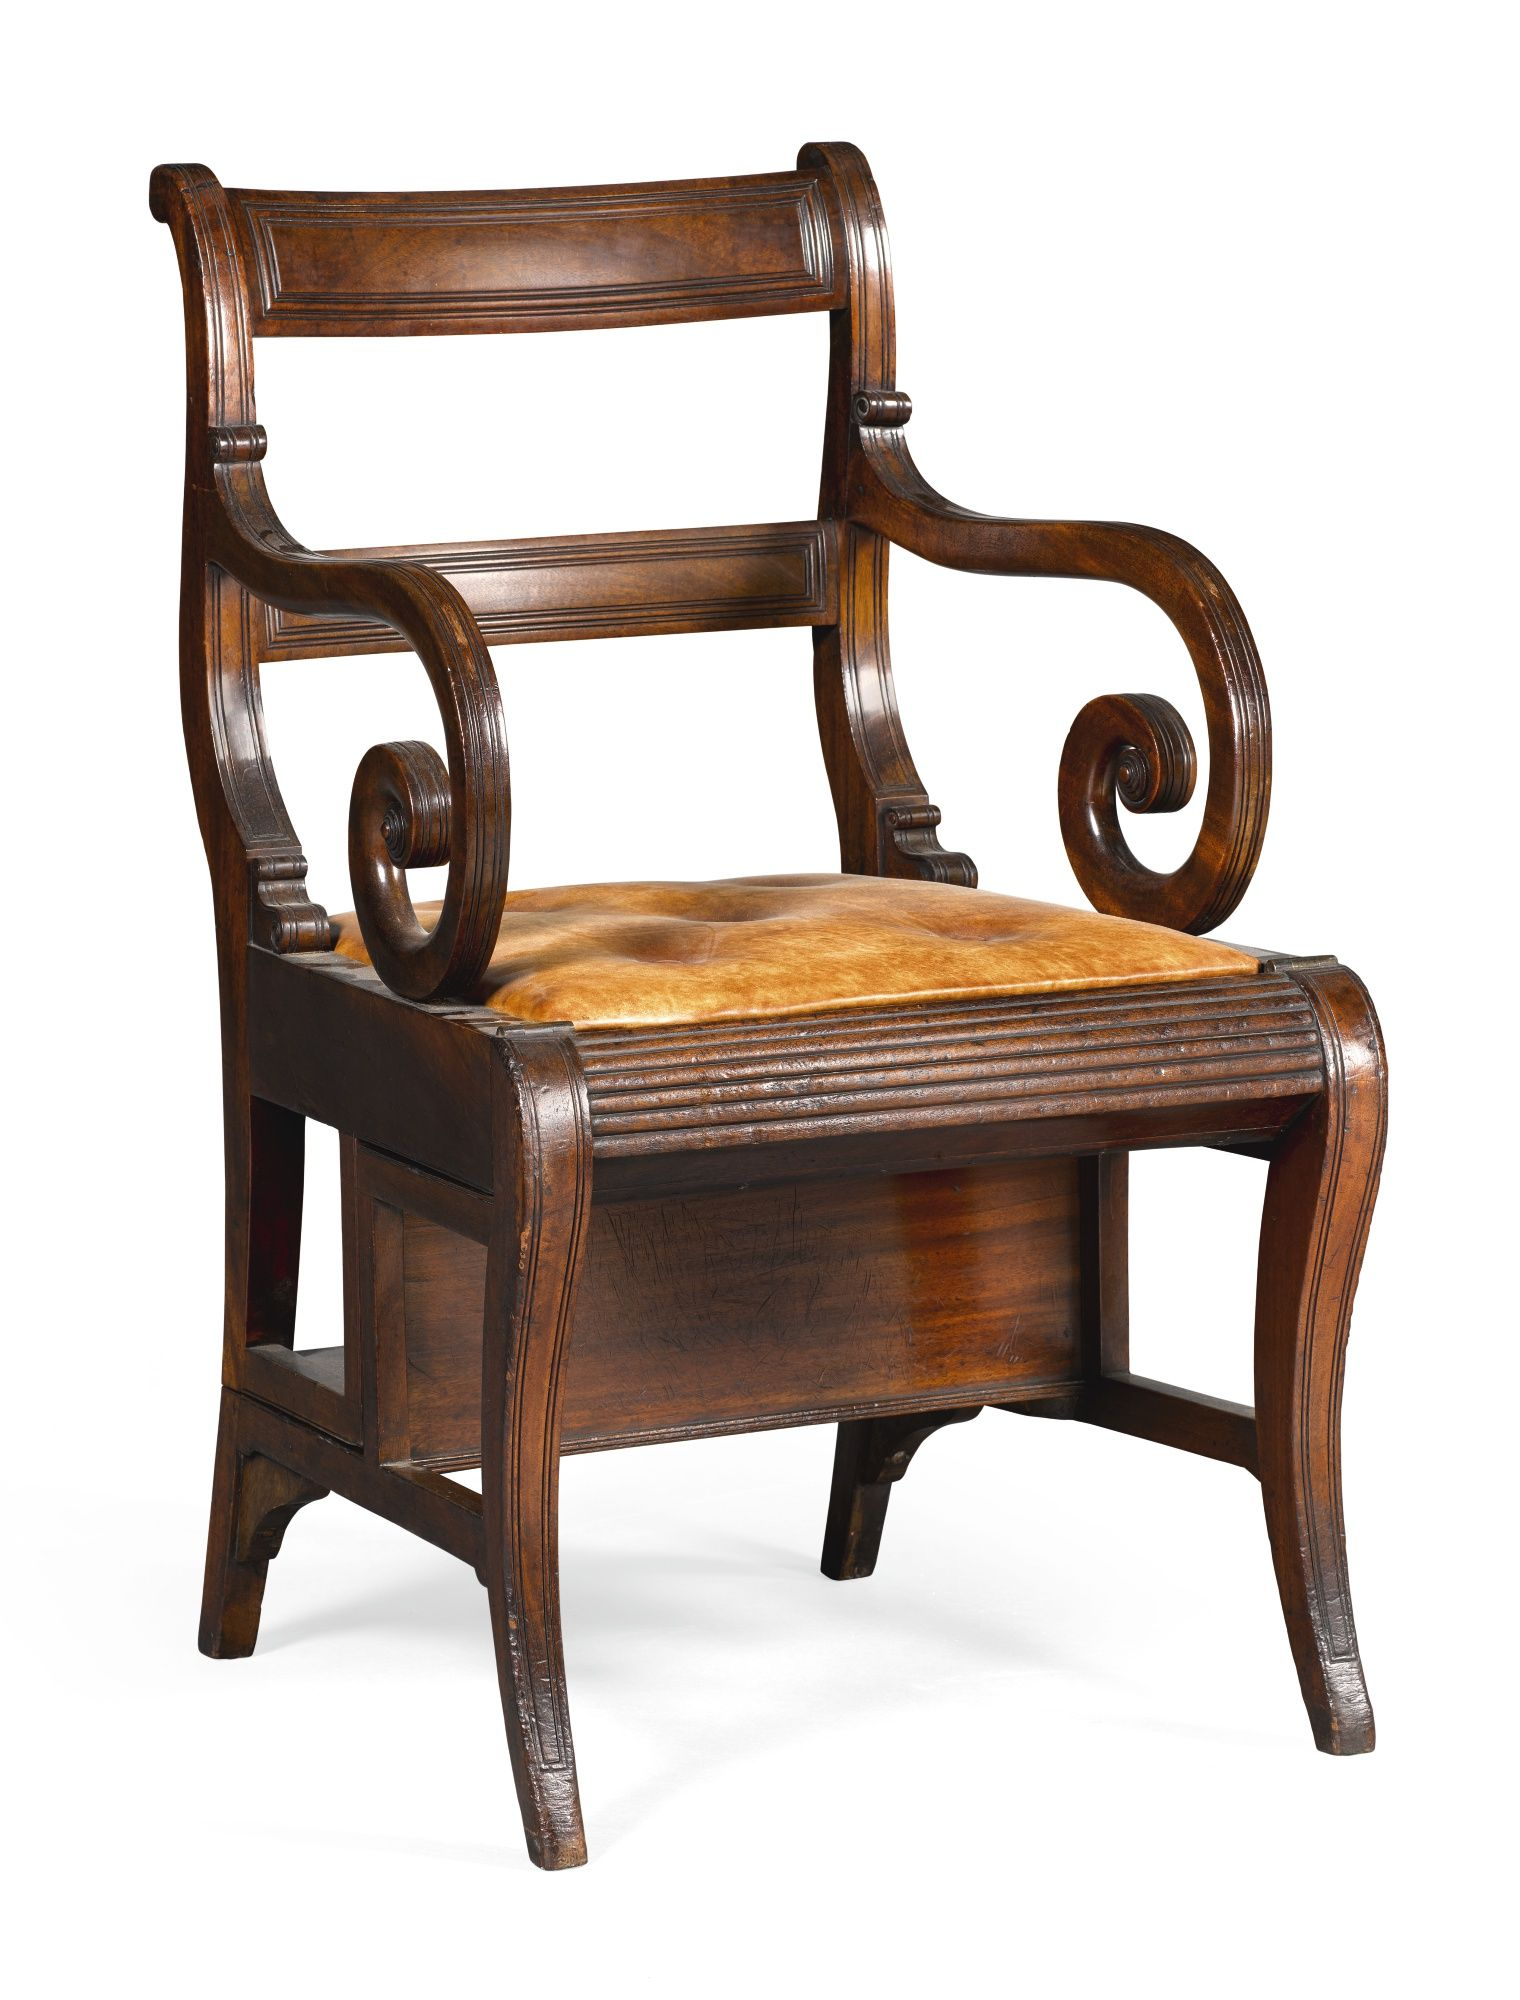 A Regency mahogany metamorphic library chair circa 1810